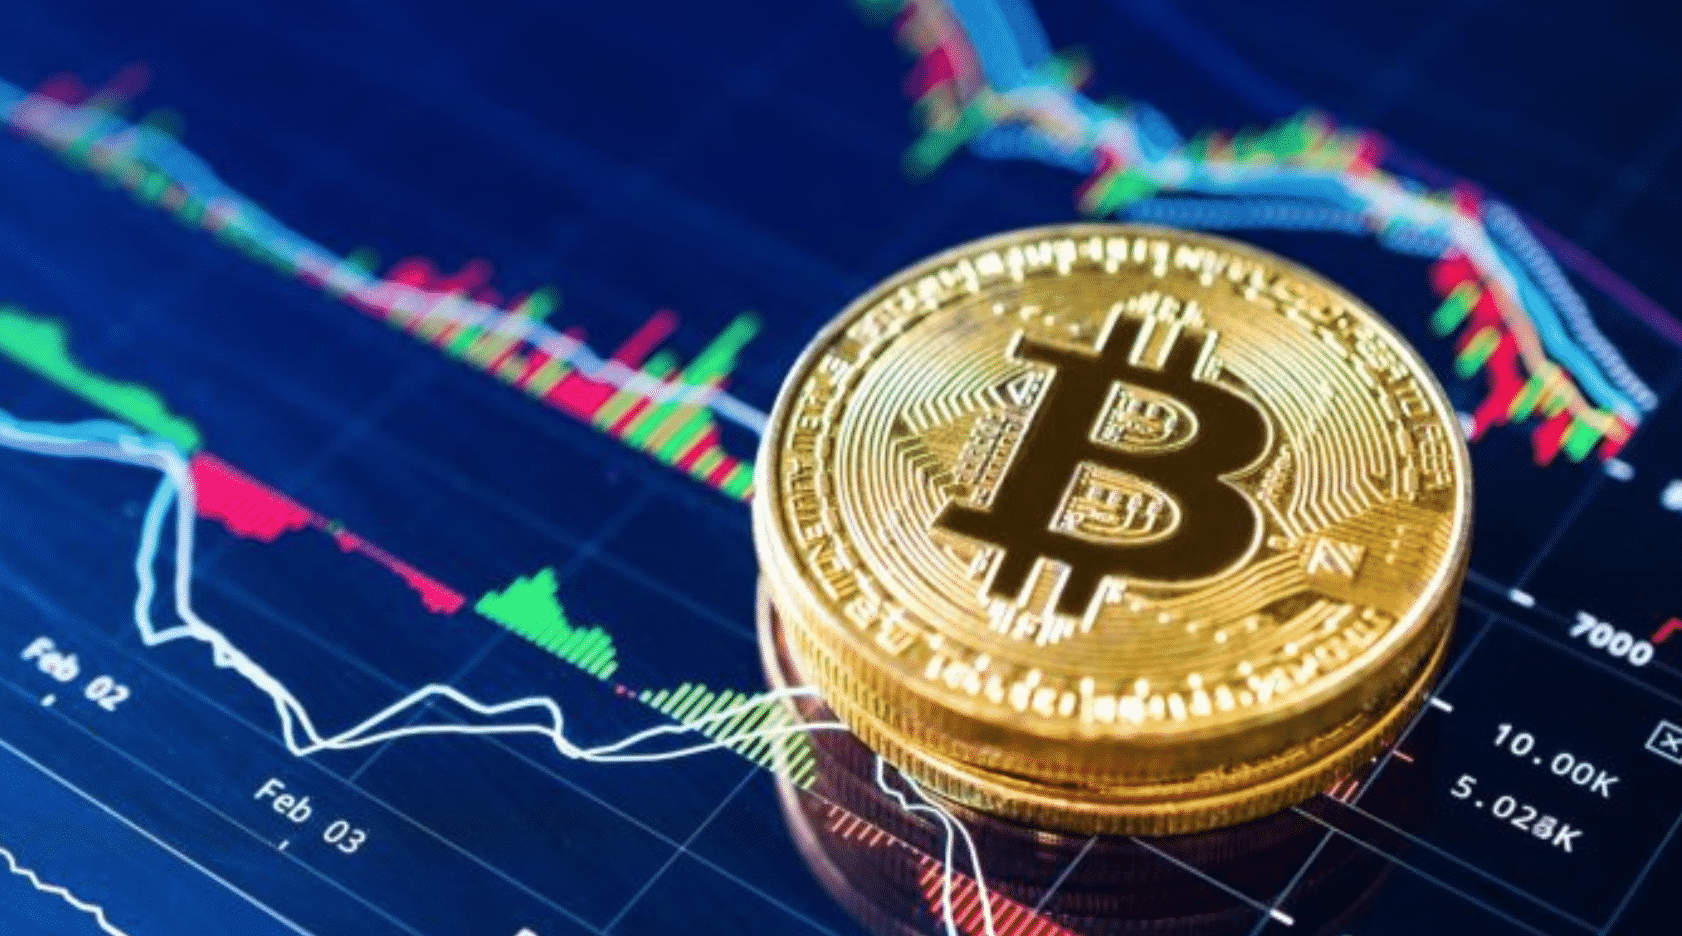 Is it wise to invest in bitcoin during coronavirus crisis?